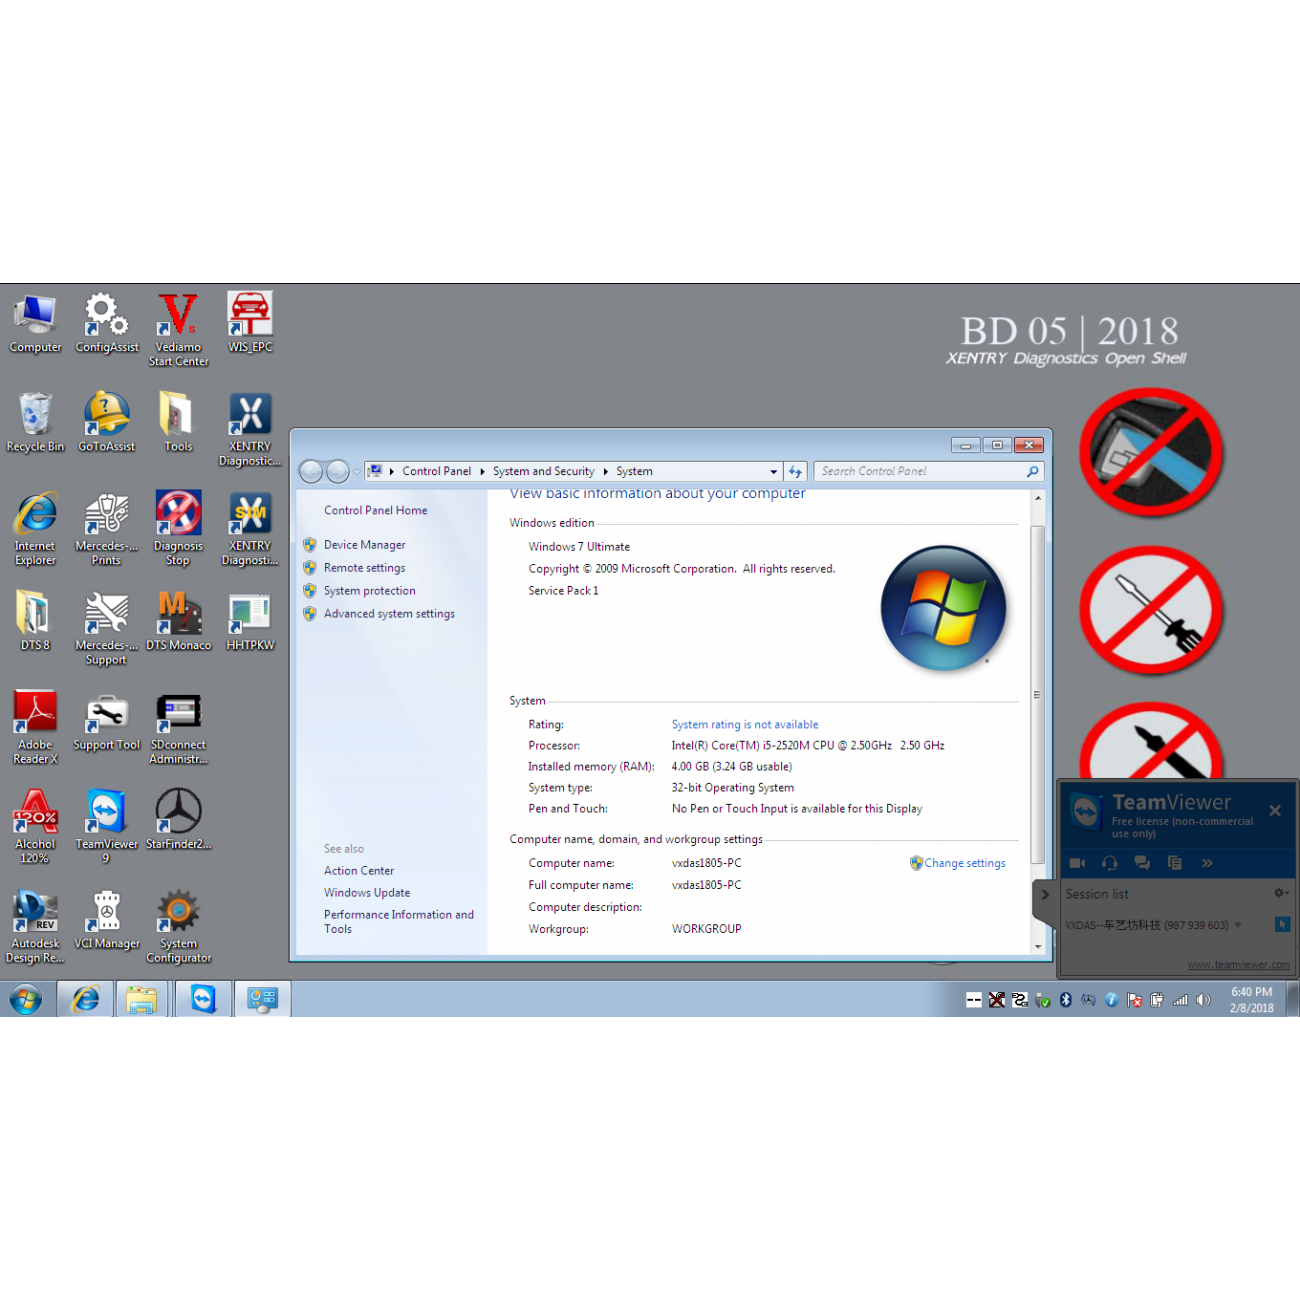 2019 03 MB Star Diagnosis SD Connect C4 Software Windows 7